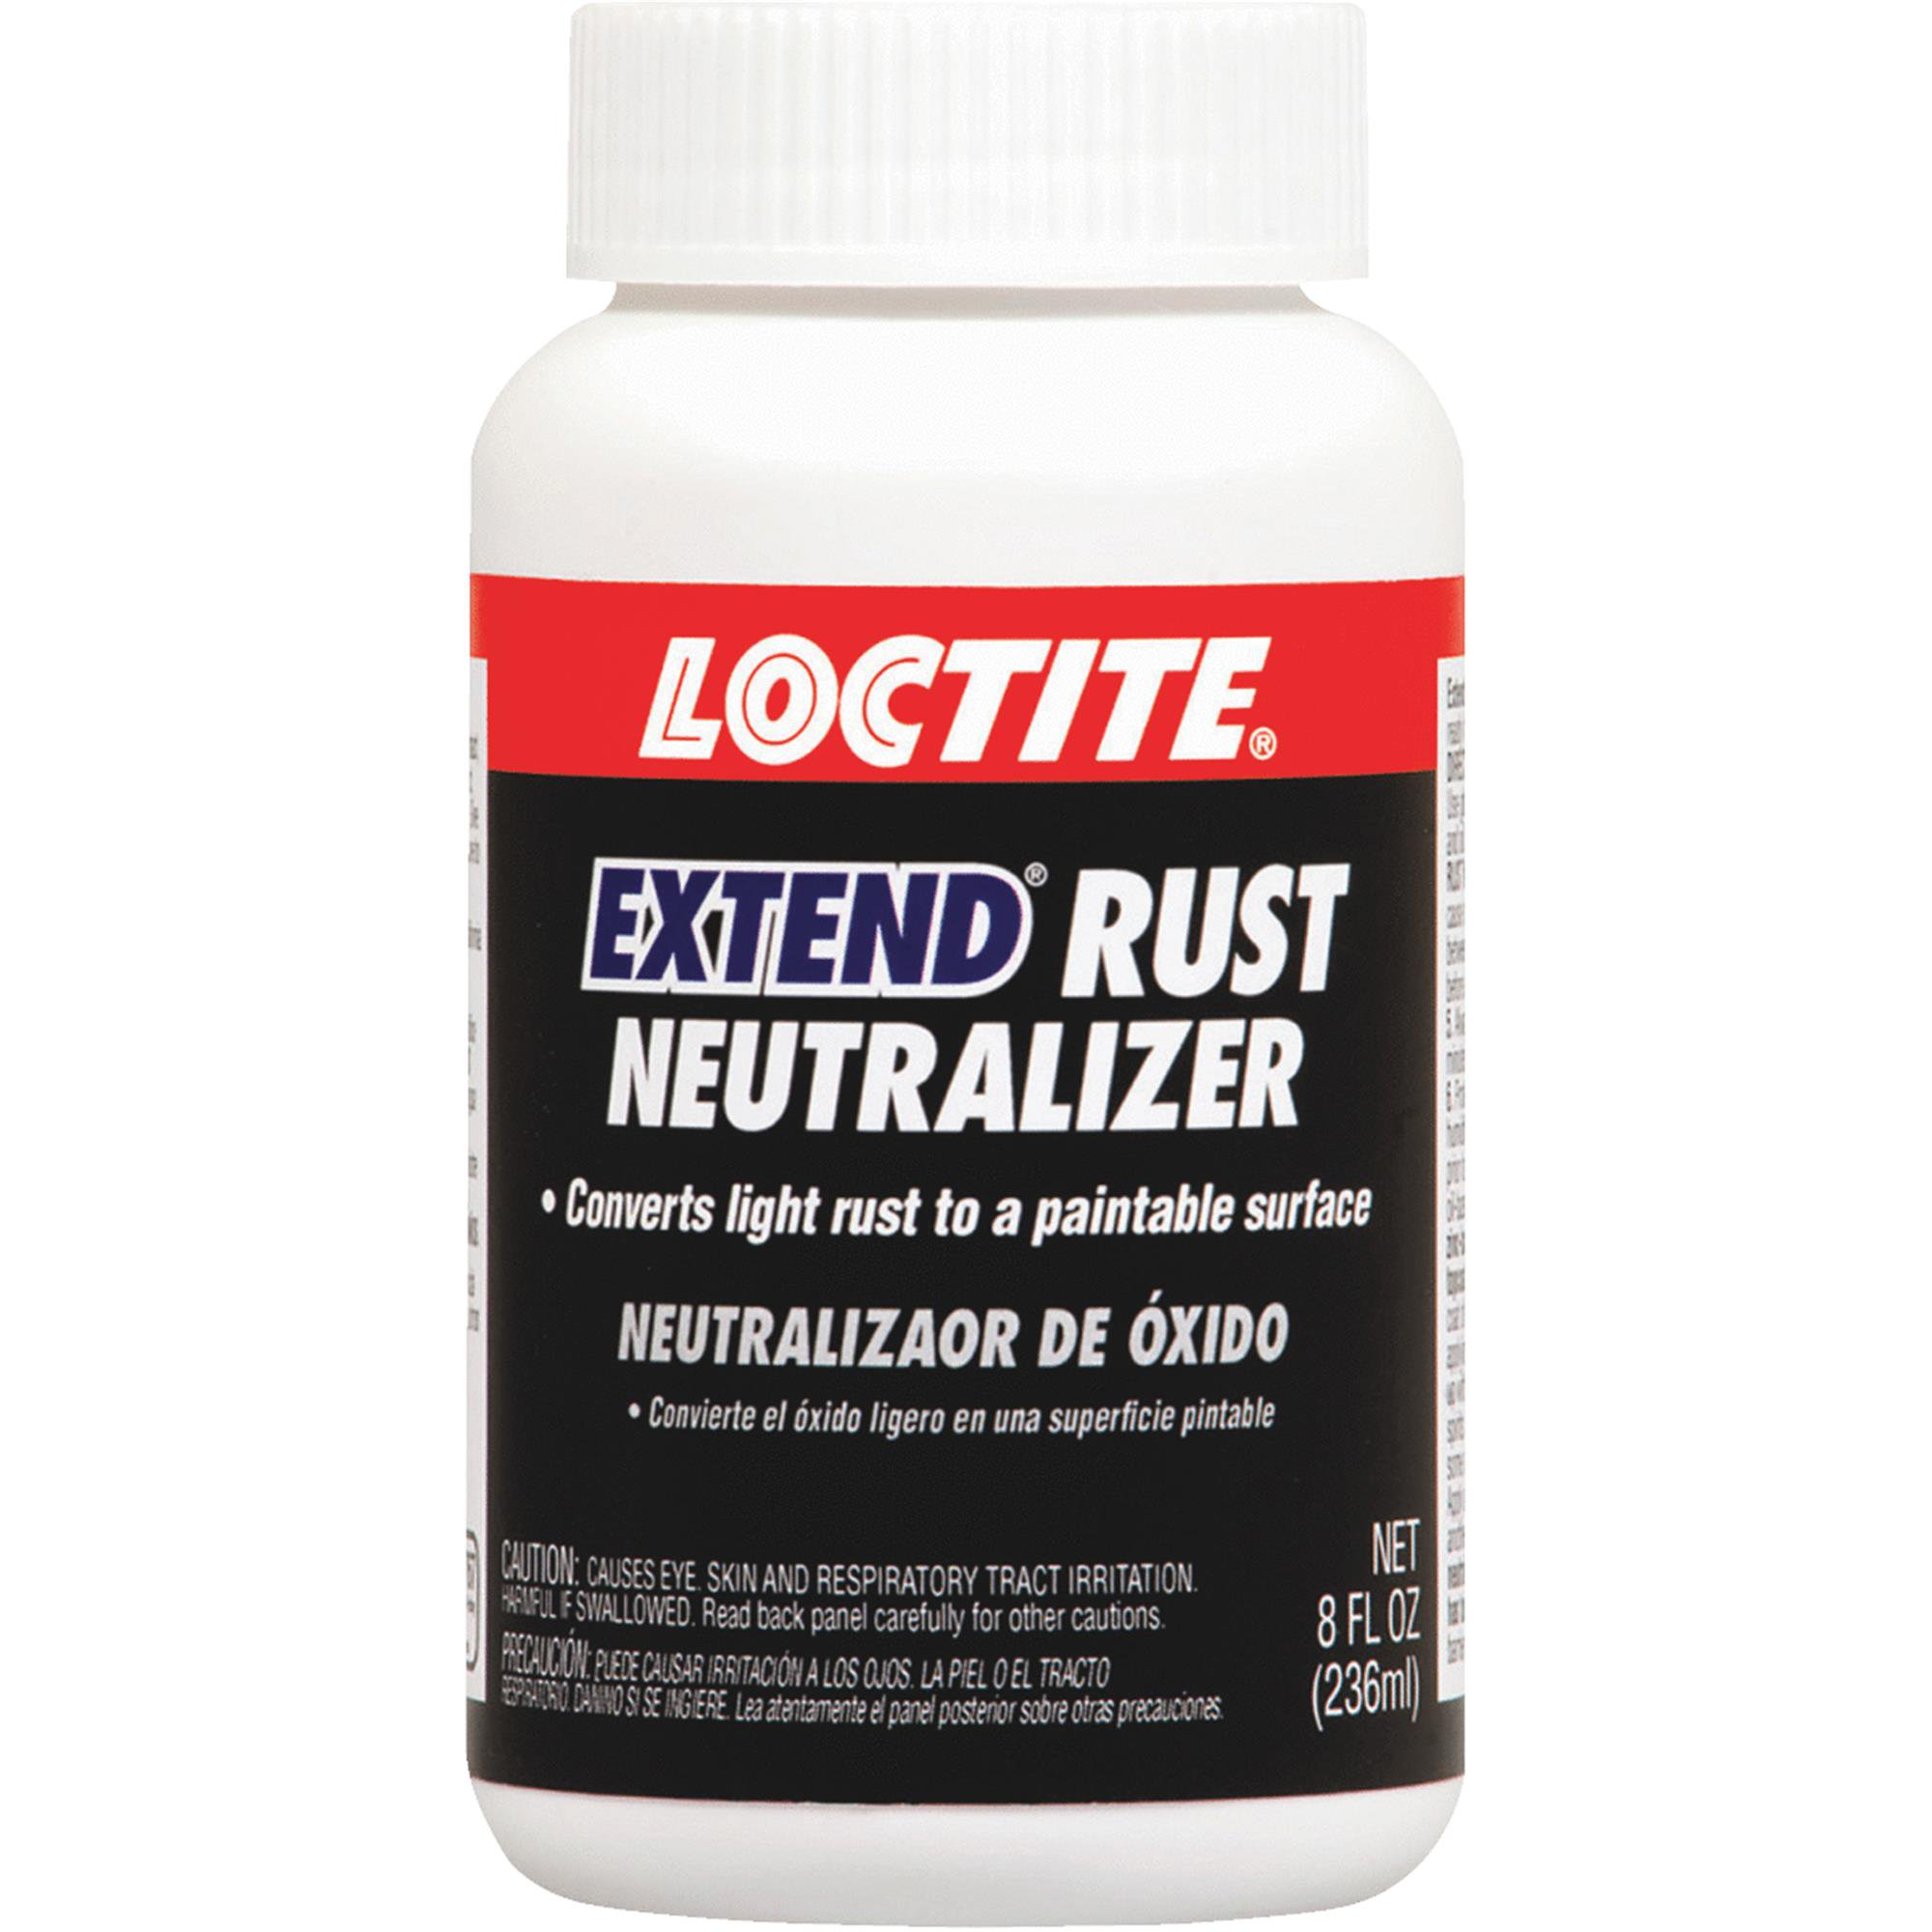 LOCTITE Extend Rust Neutralizer Treatment